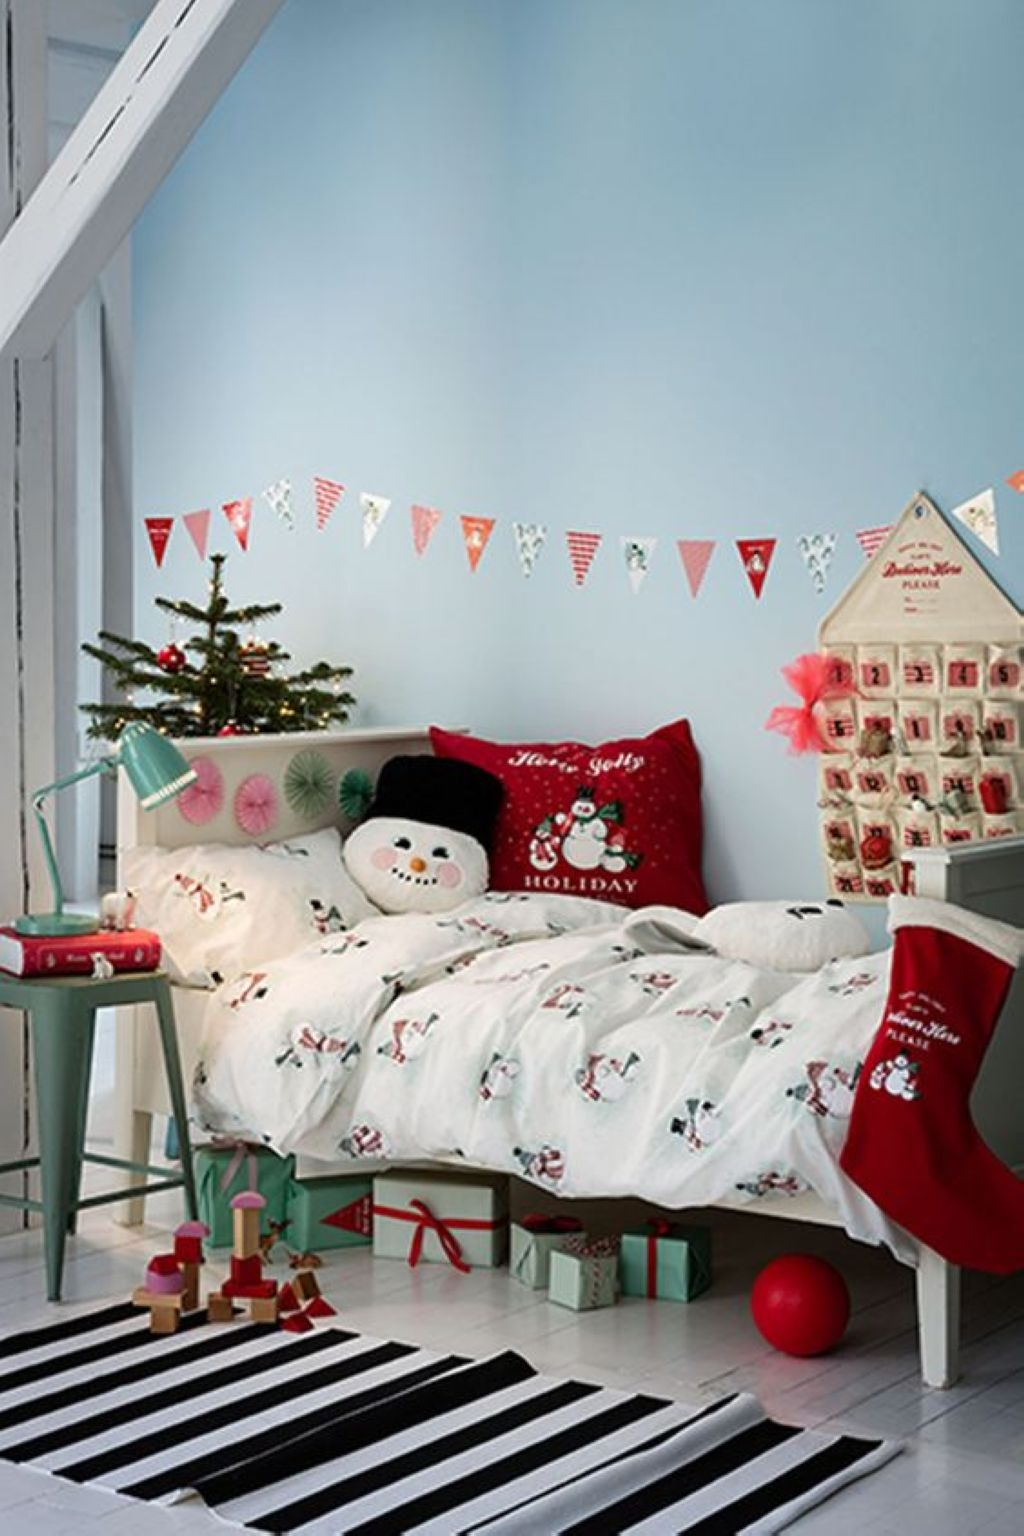 Children were nestled all snug in their beds, while holiday décor danced in their heads